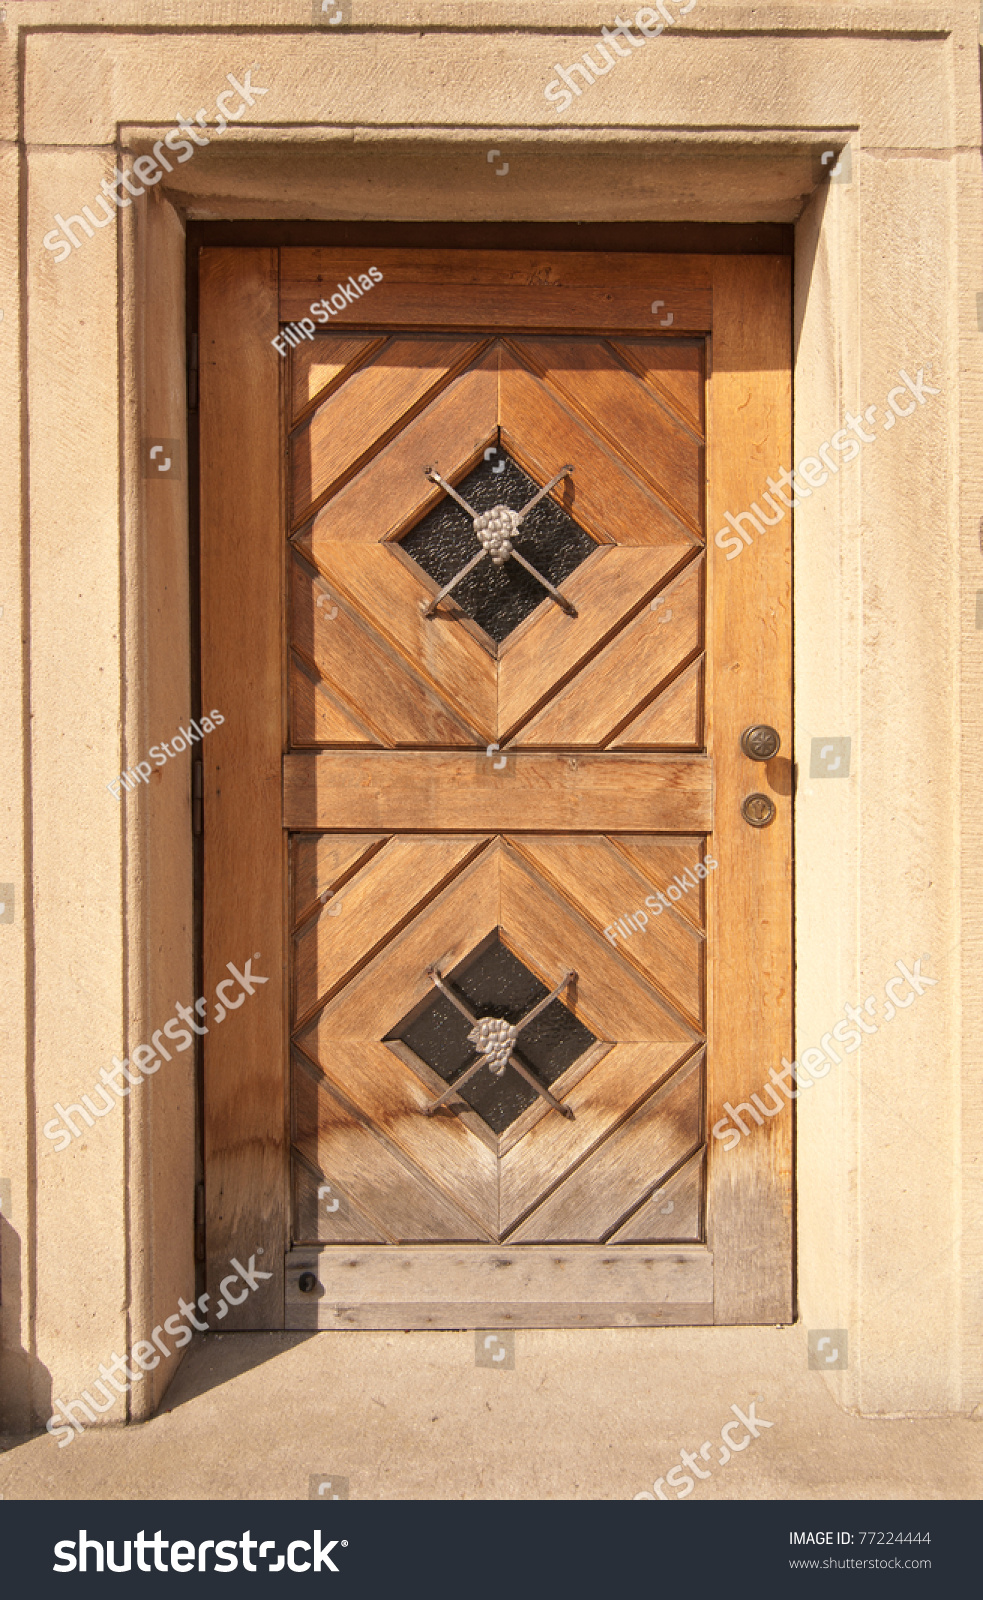 Wooden door prague czech republic stock photo 77224444 for Door z prague